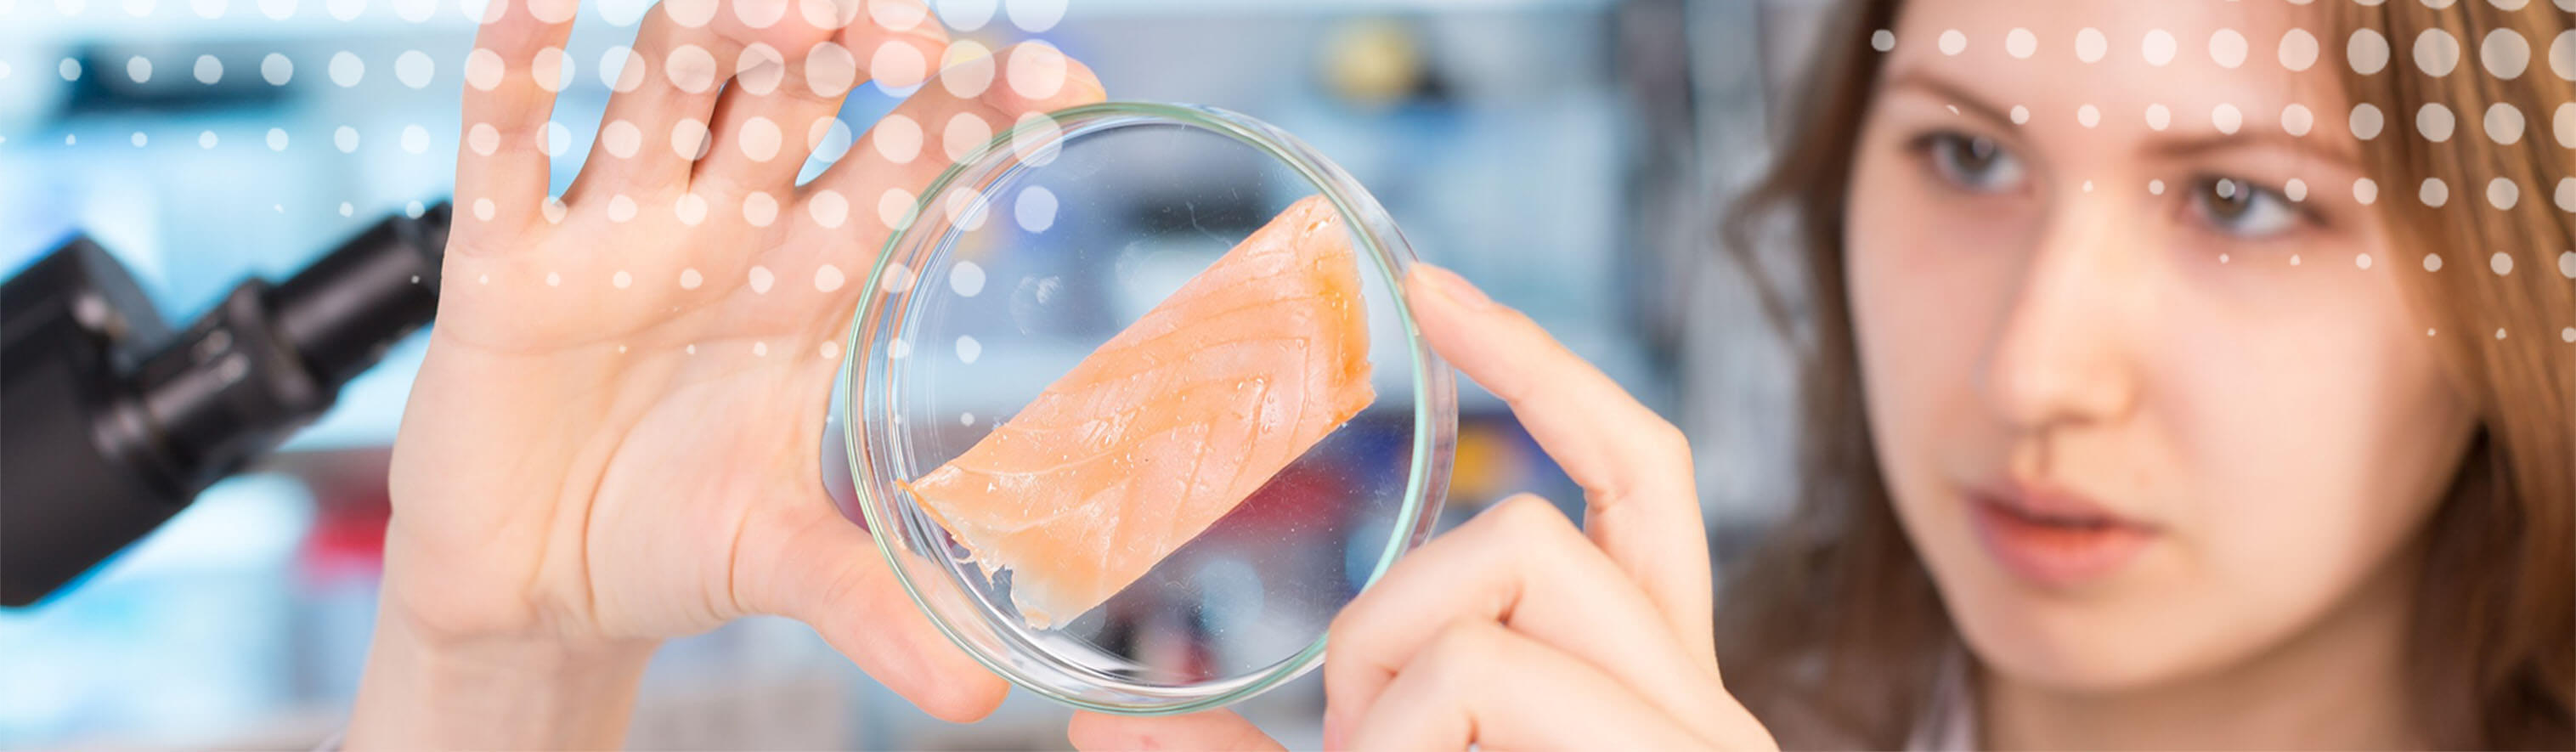 Food Safety Testing Slider - Woman examines fish sample in petri dish